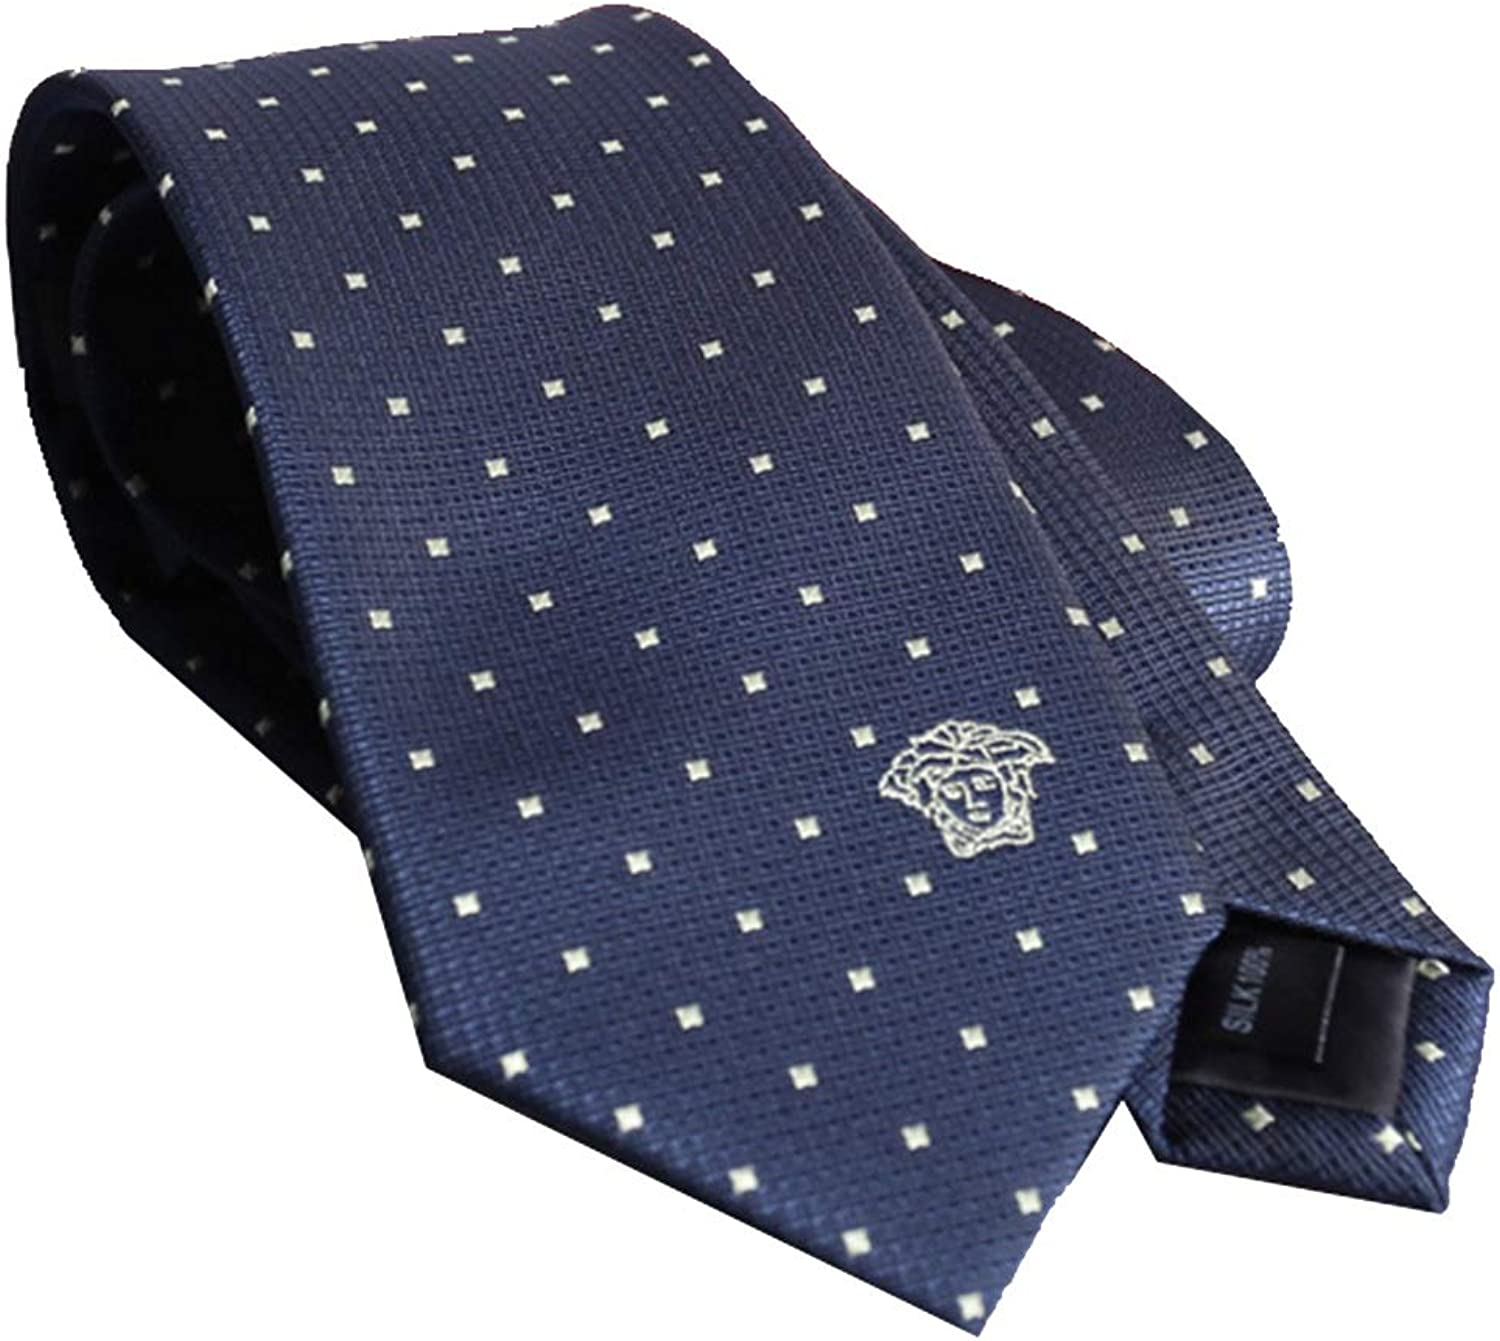 Sparkling Stars Boutique Gift Boxed Men's Business Ties New Tie